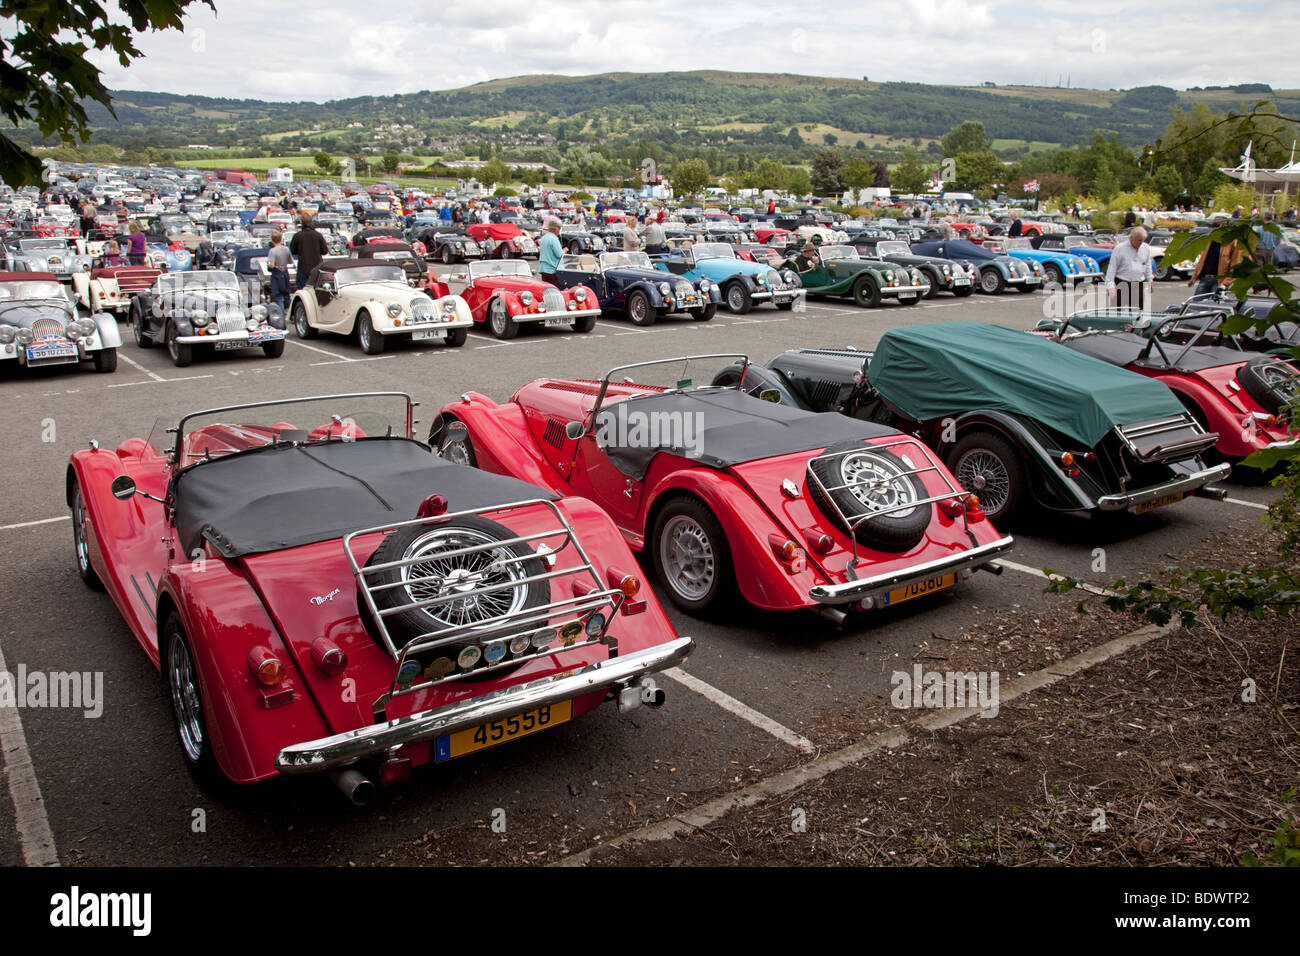 Line up of Morgan motor cars at centenary celebrations Cheltenham Racecourse UK August 2009 - Stock Image